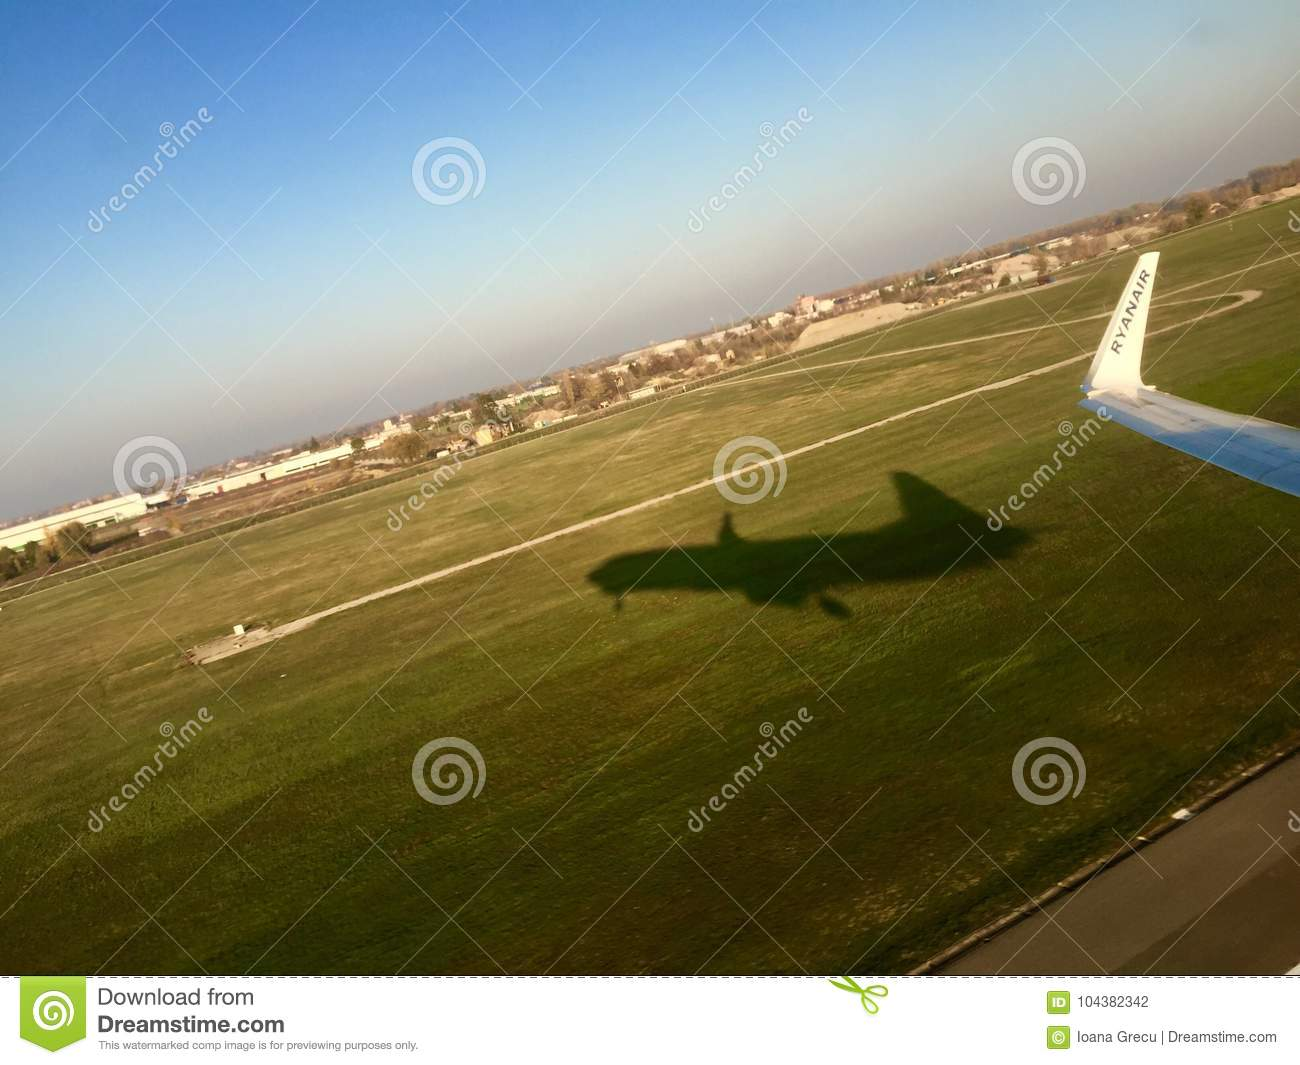 Airplane wing and shadow at take off